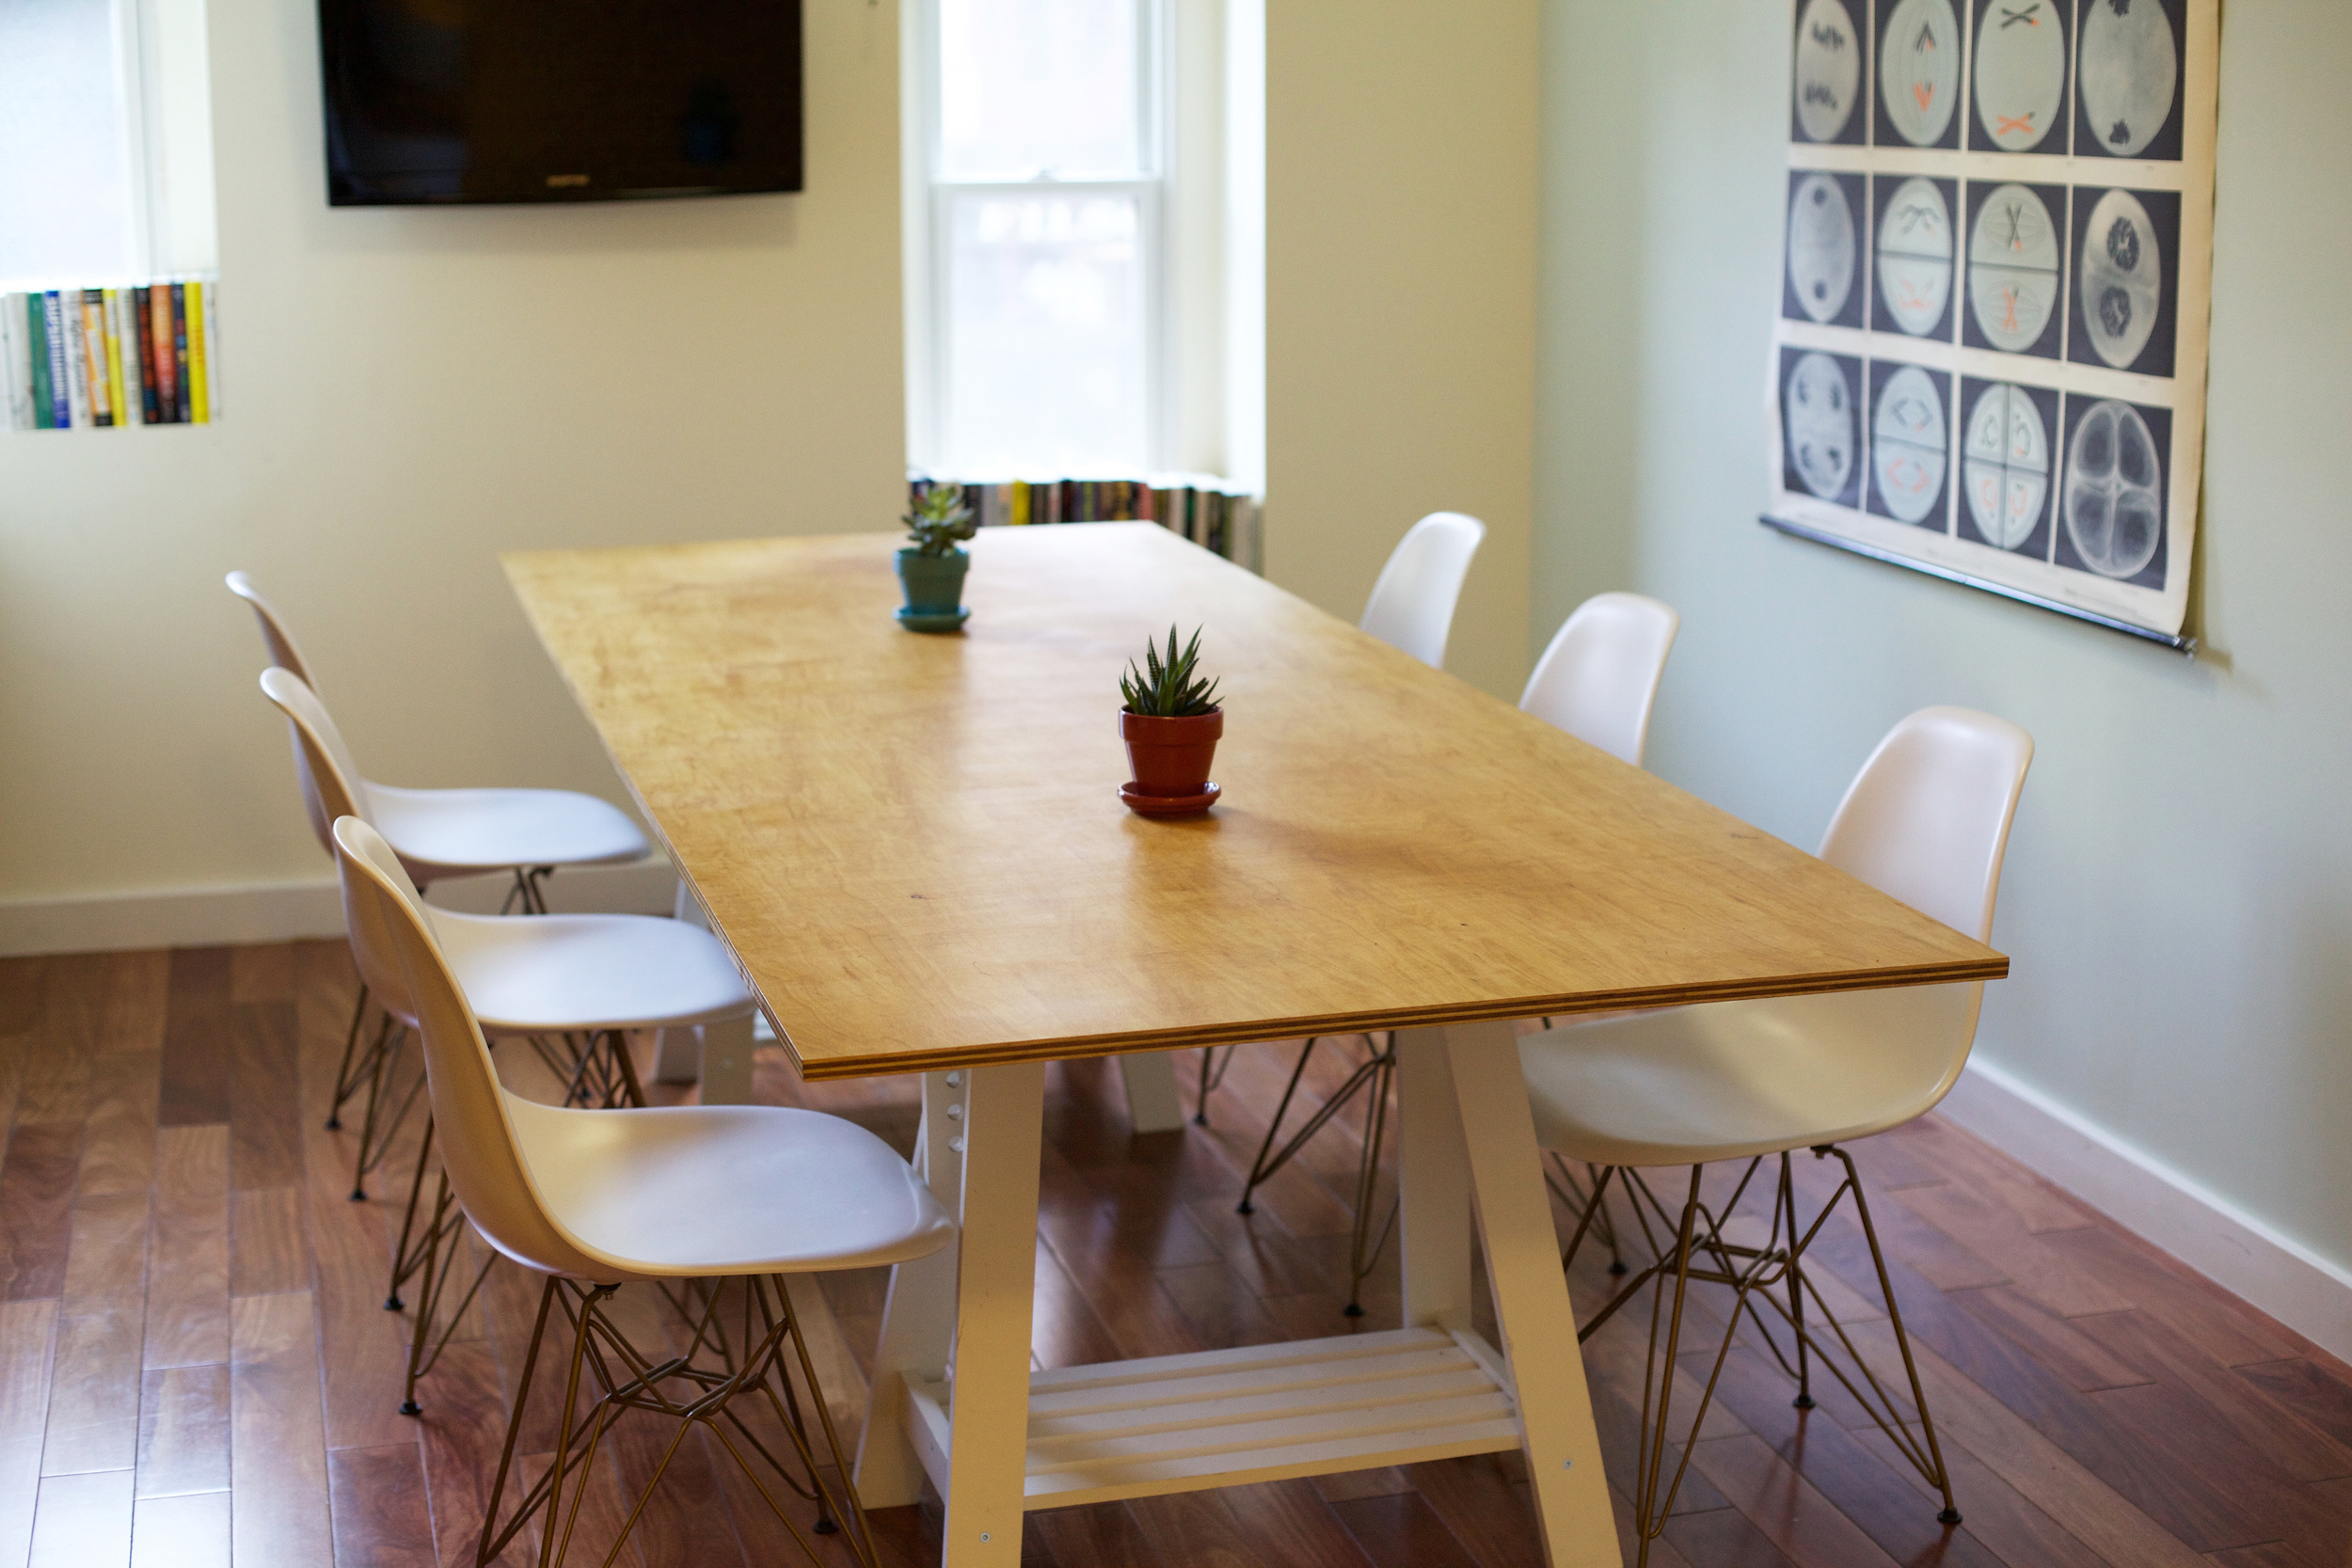 zmaic-one-month-interior-design-conference-room-workspace-custom-table.jpg